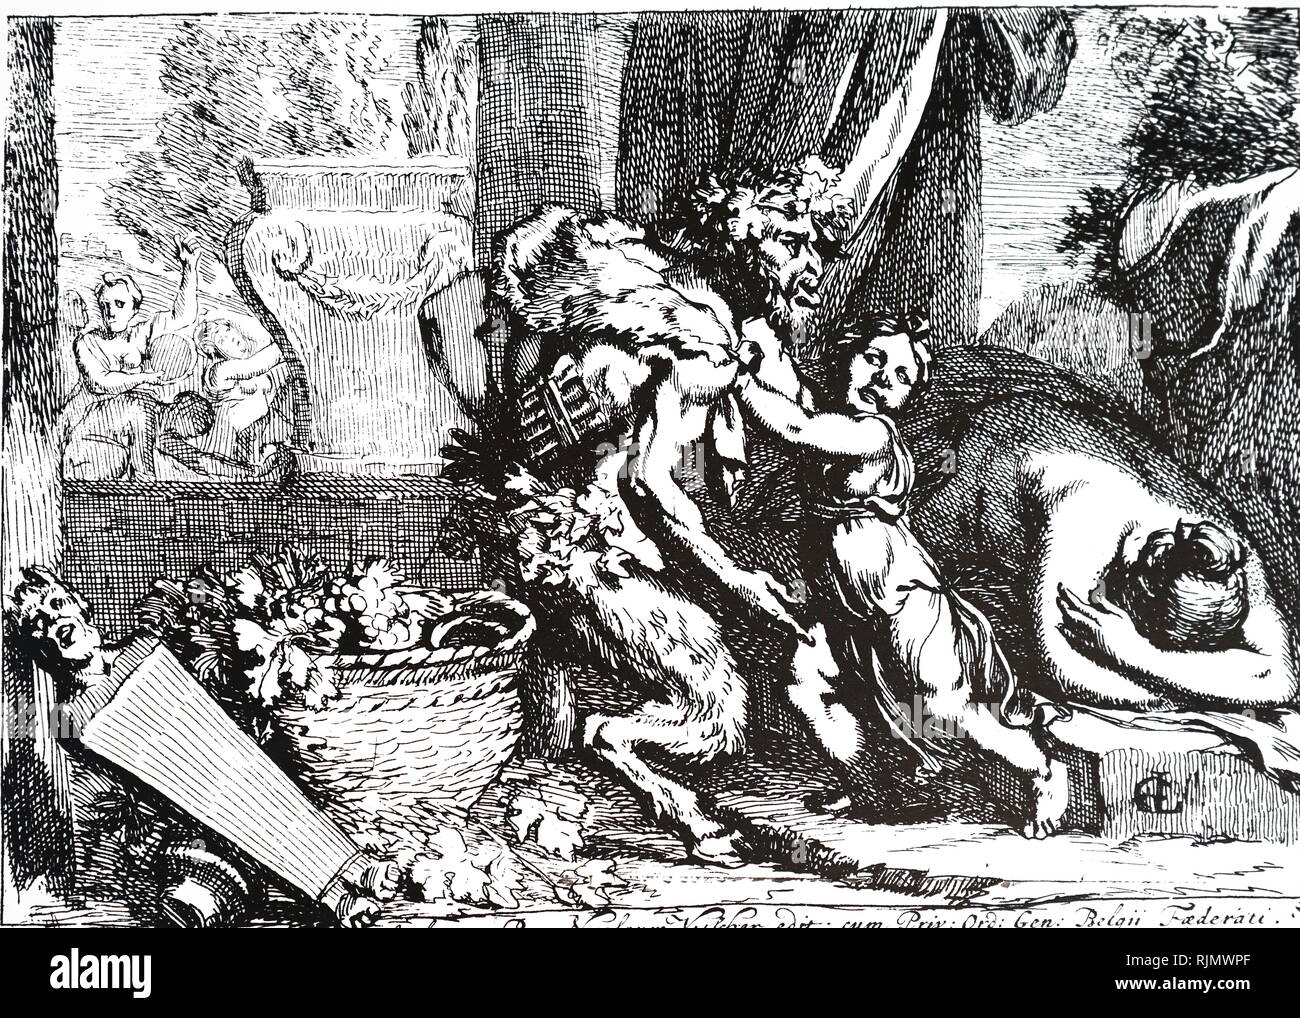 Bacchante with Silenus; etching by Gerard de Lairesse (1641 - 1711). In Greek mythology a Bacchante or Maenad, was a female follower of Dionysus. Silenus was a companion and tutor to the wine god Dionysus. Stock Photo